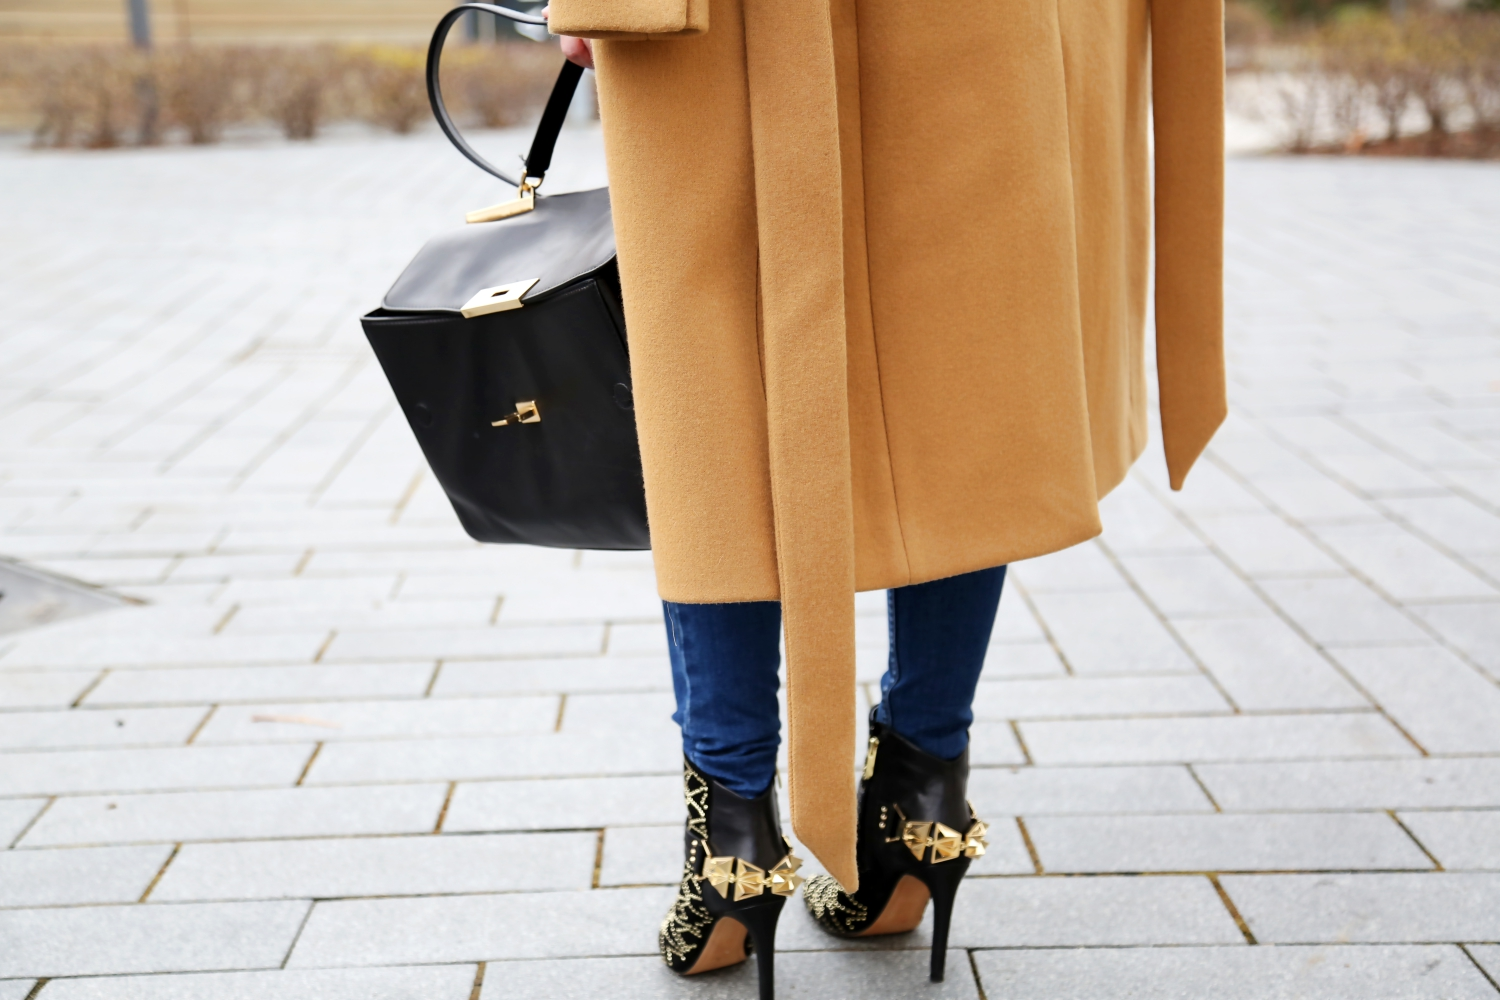 outfit-details-michaelkors-bag-ripped-jeans-sam-edelman-studded-booties-iro-paris-camel-coat